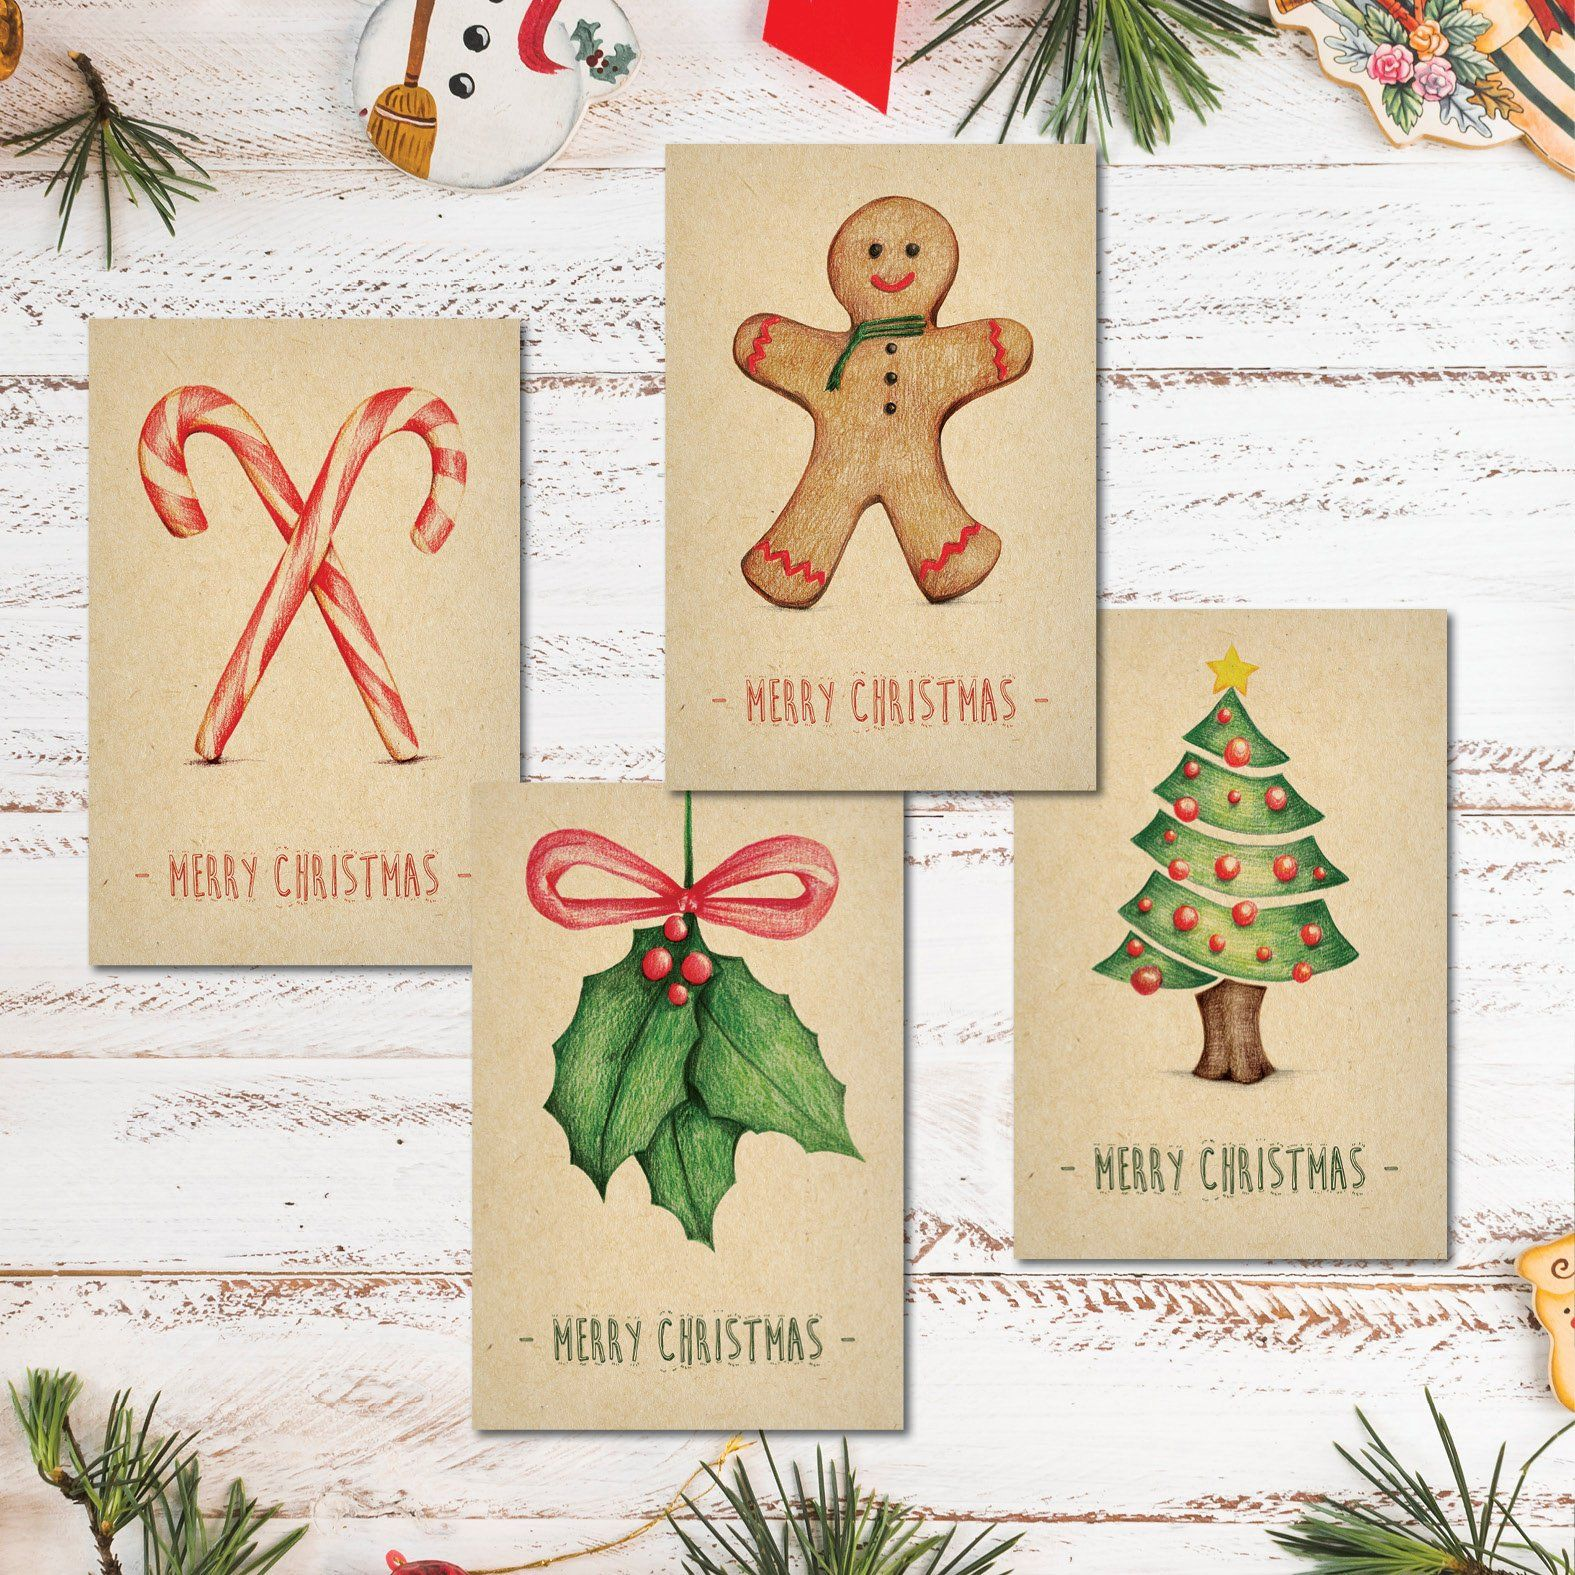 4 in 1! Printable Merry Christmas Card, Holiday Postcard